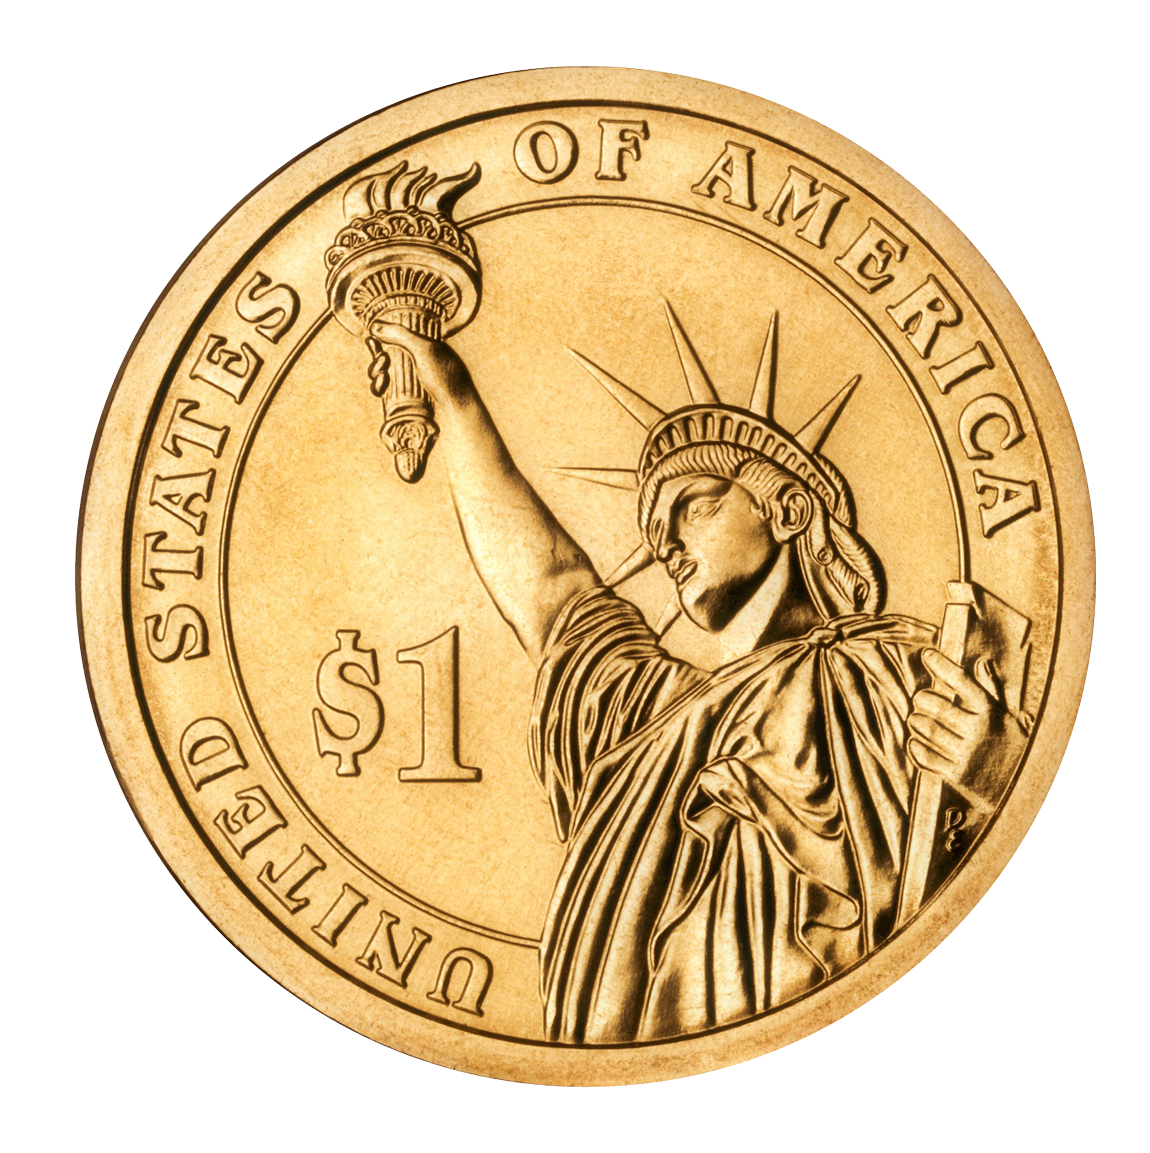 Dollar Coin PNG Transparent Image - Coin HD PNG